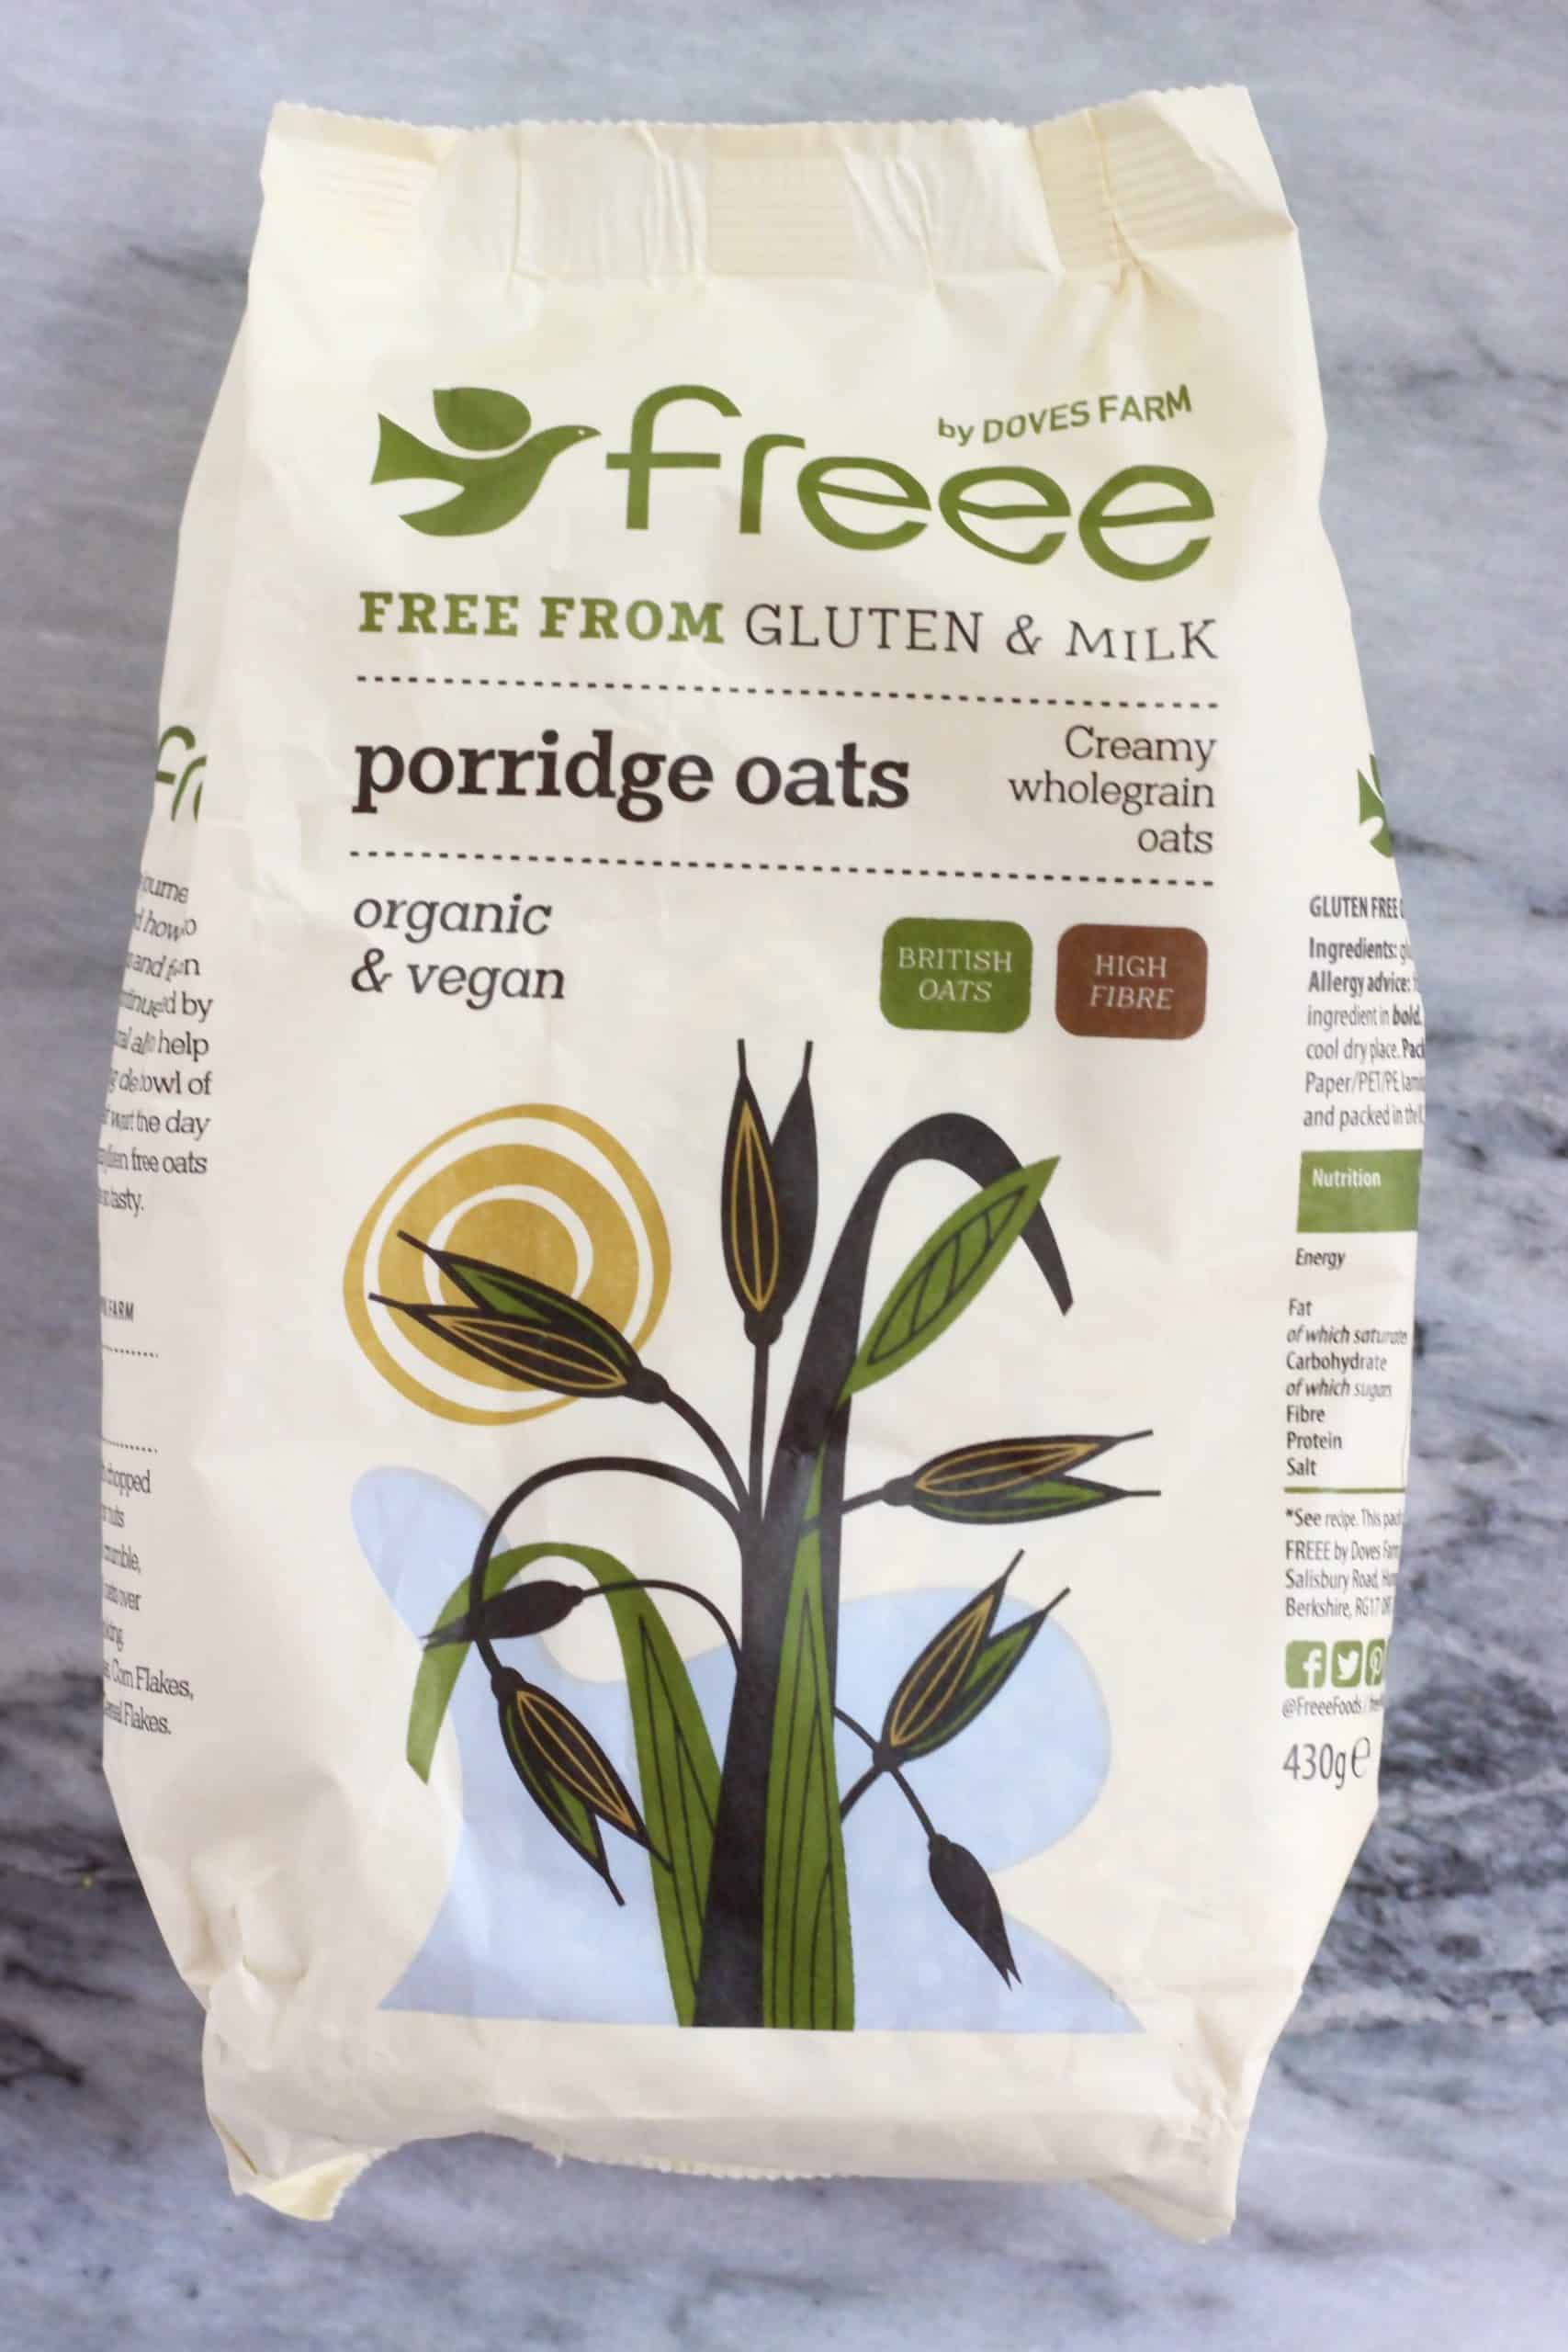 A packet of Dove's Farm FREEE gluten-free porridge oats